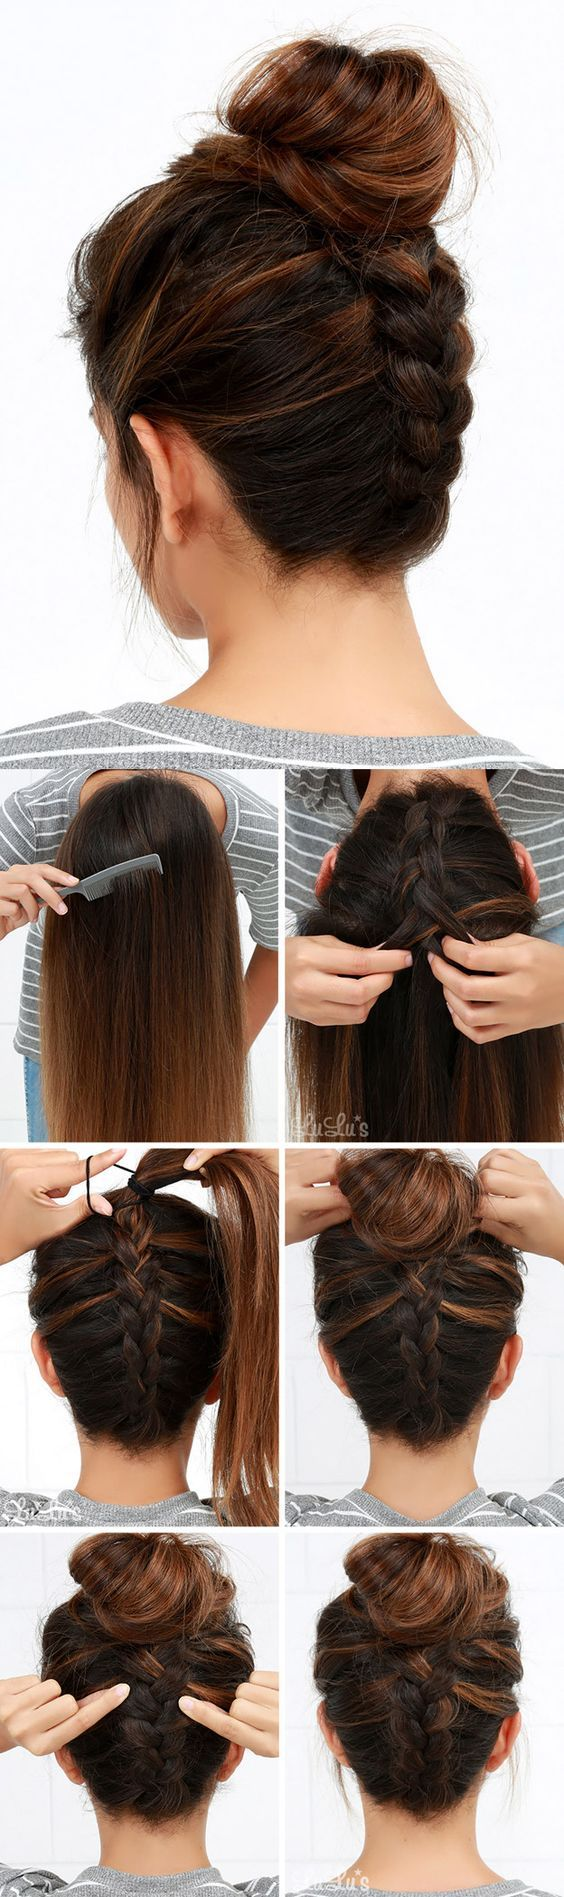 best hair inspirationstyles images on pinterest hair ideas